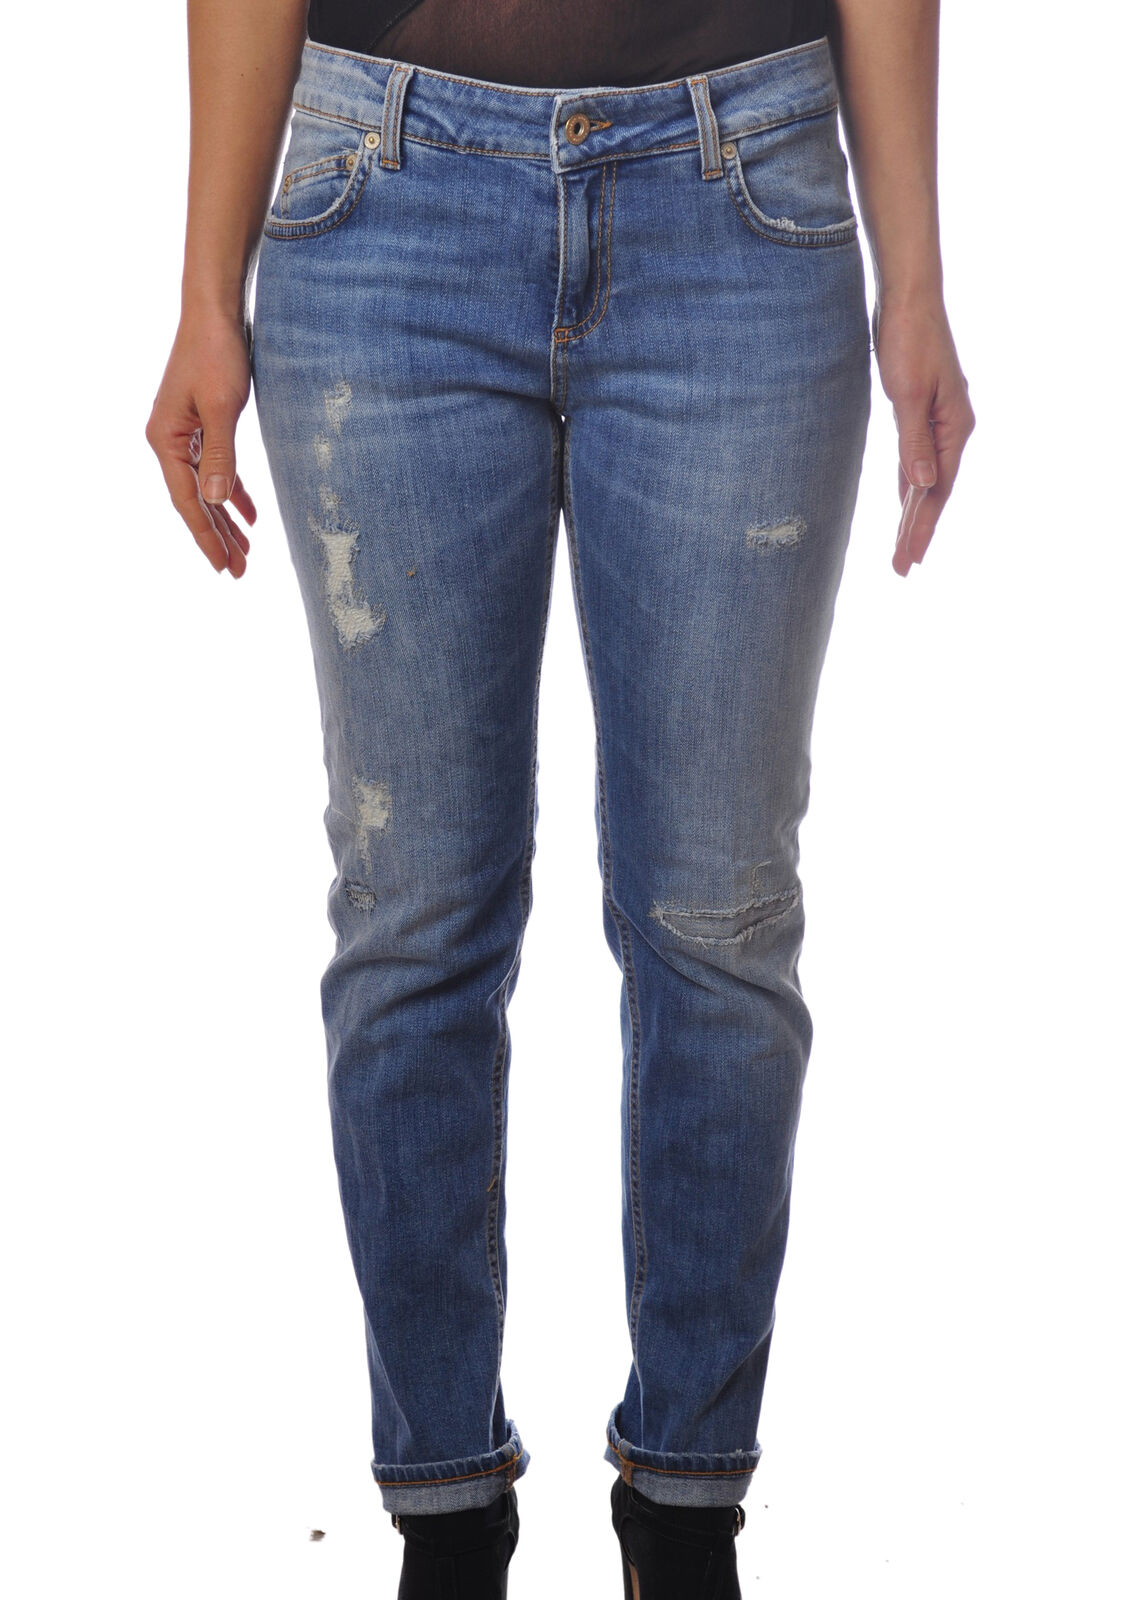 Dondup - Jeans-Pants-slim fit - Woman - Denim - 4985831G180942